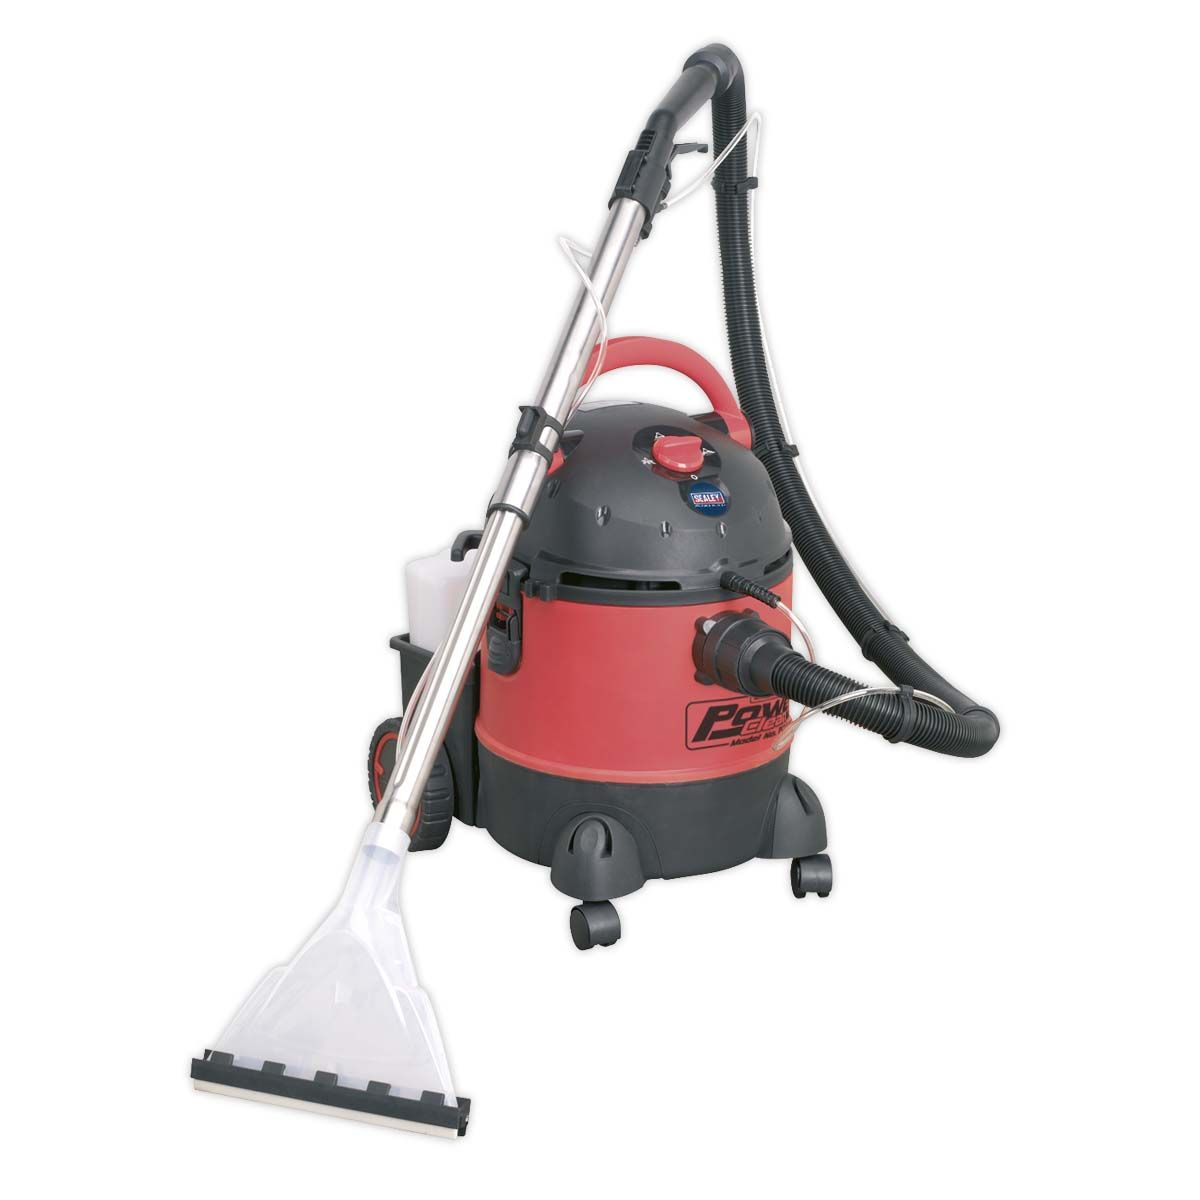 Sealey Valeting Machine Wet & Dry with Accessories 20L 1250W/230V